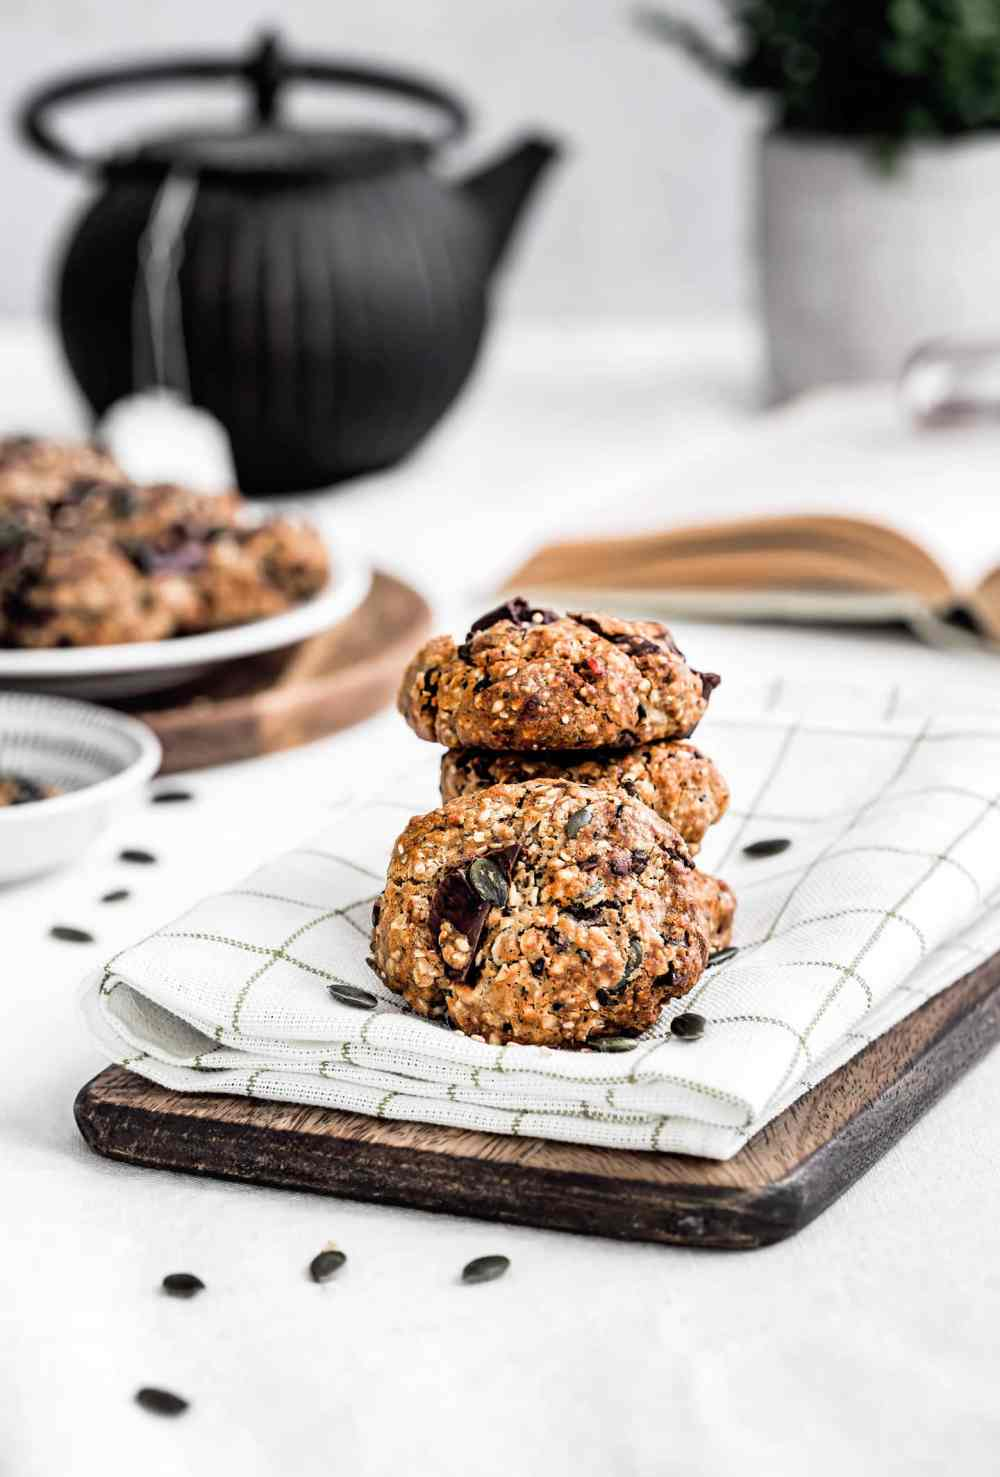 Multigrain cookies and chocolate